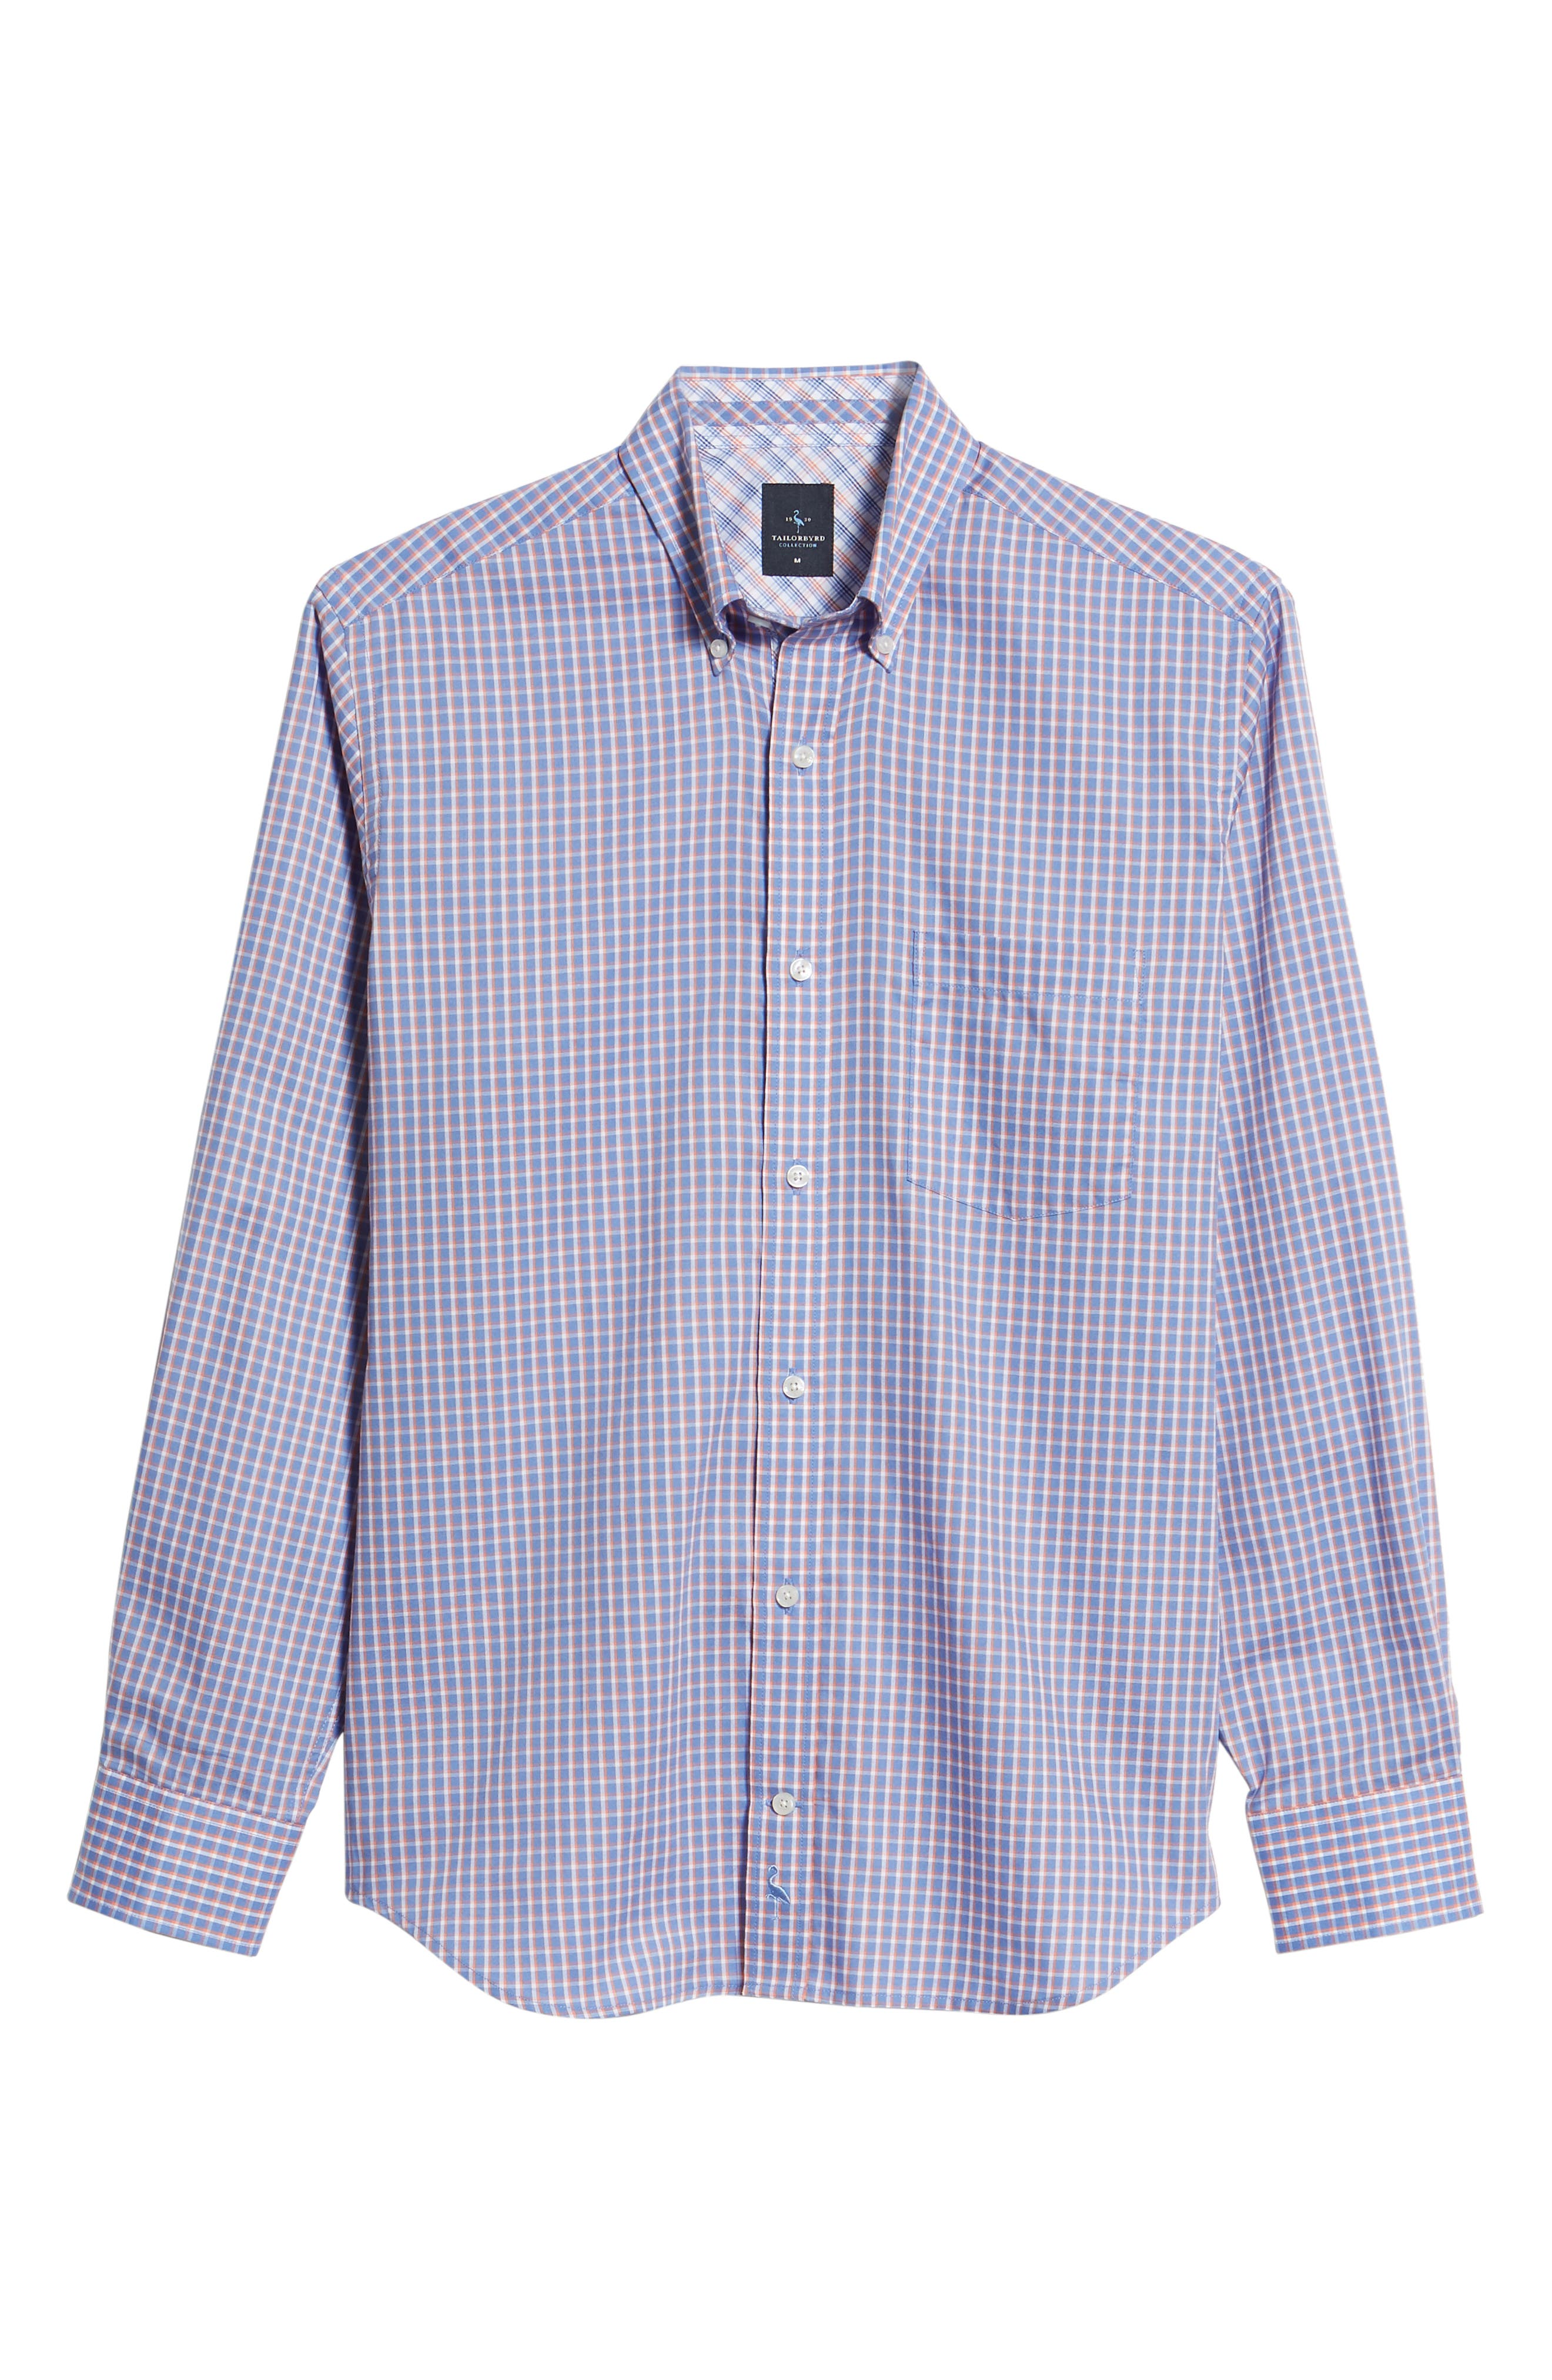 Jaie Regular Fit Check Sport Shirt,                             Alternate thumbnail 6, color,                             400